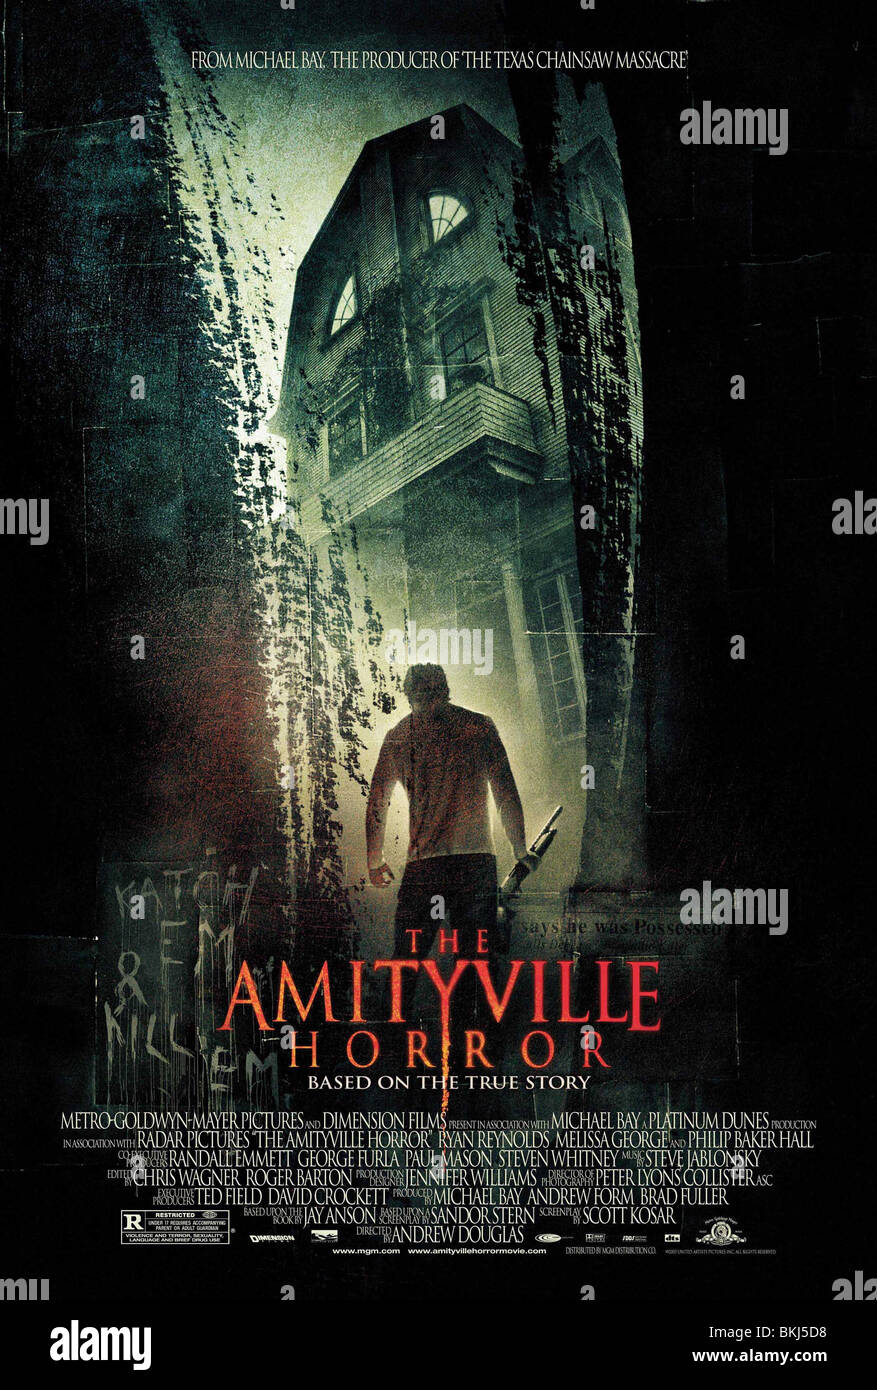 THE AMITYVILLE HORROR (2005) POSTER AMIT 001-25 - Stock Image